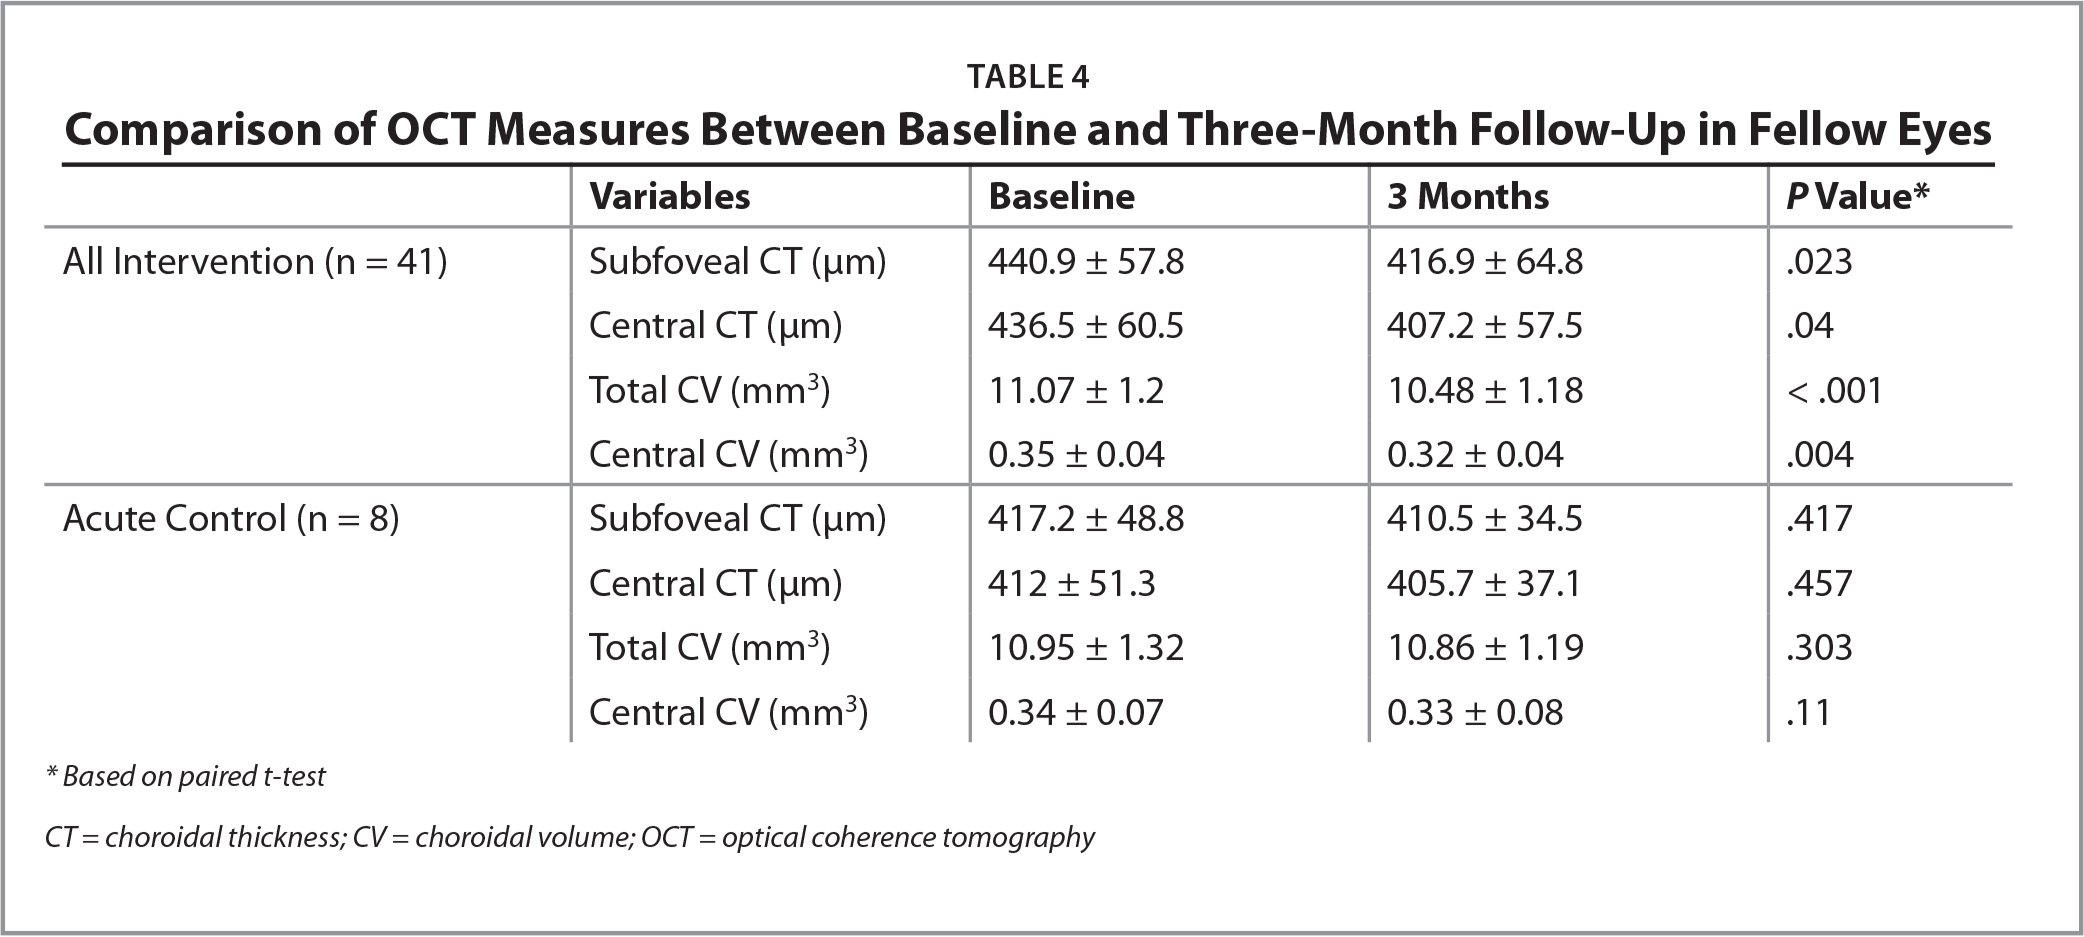 Comparison of OCT Measures Between Baseline and Three-Month Follow-Up in Fellow Eyes